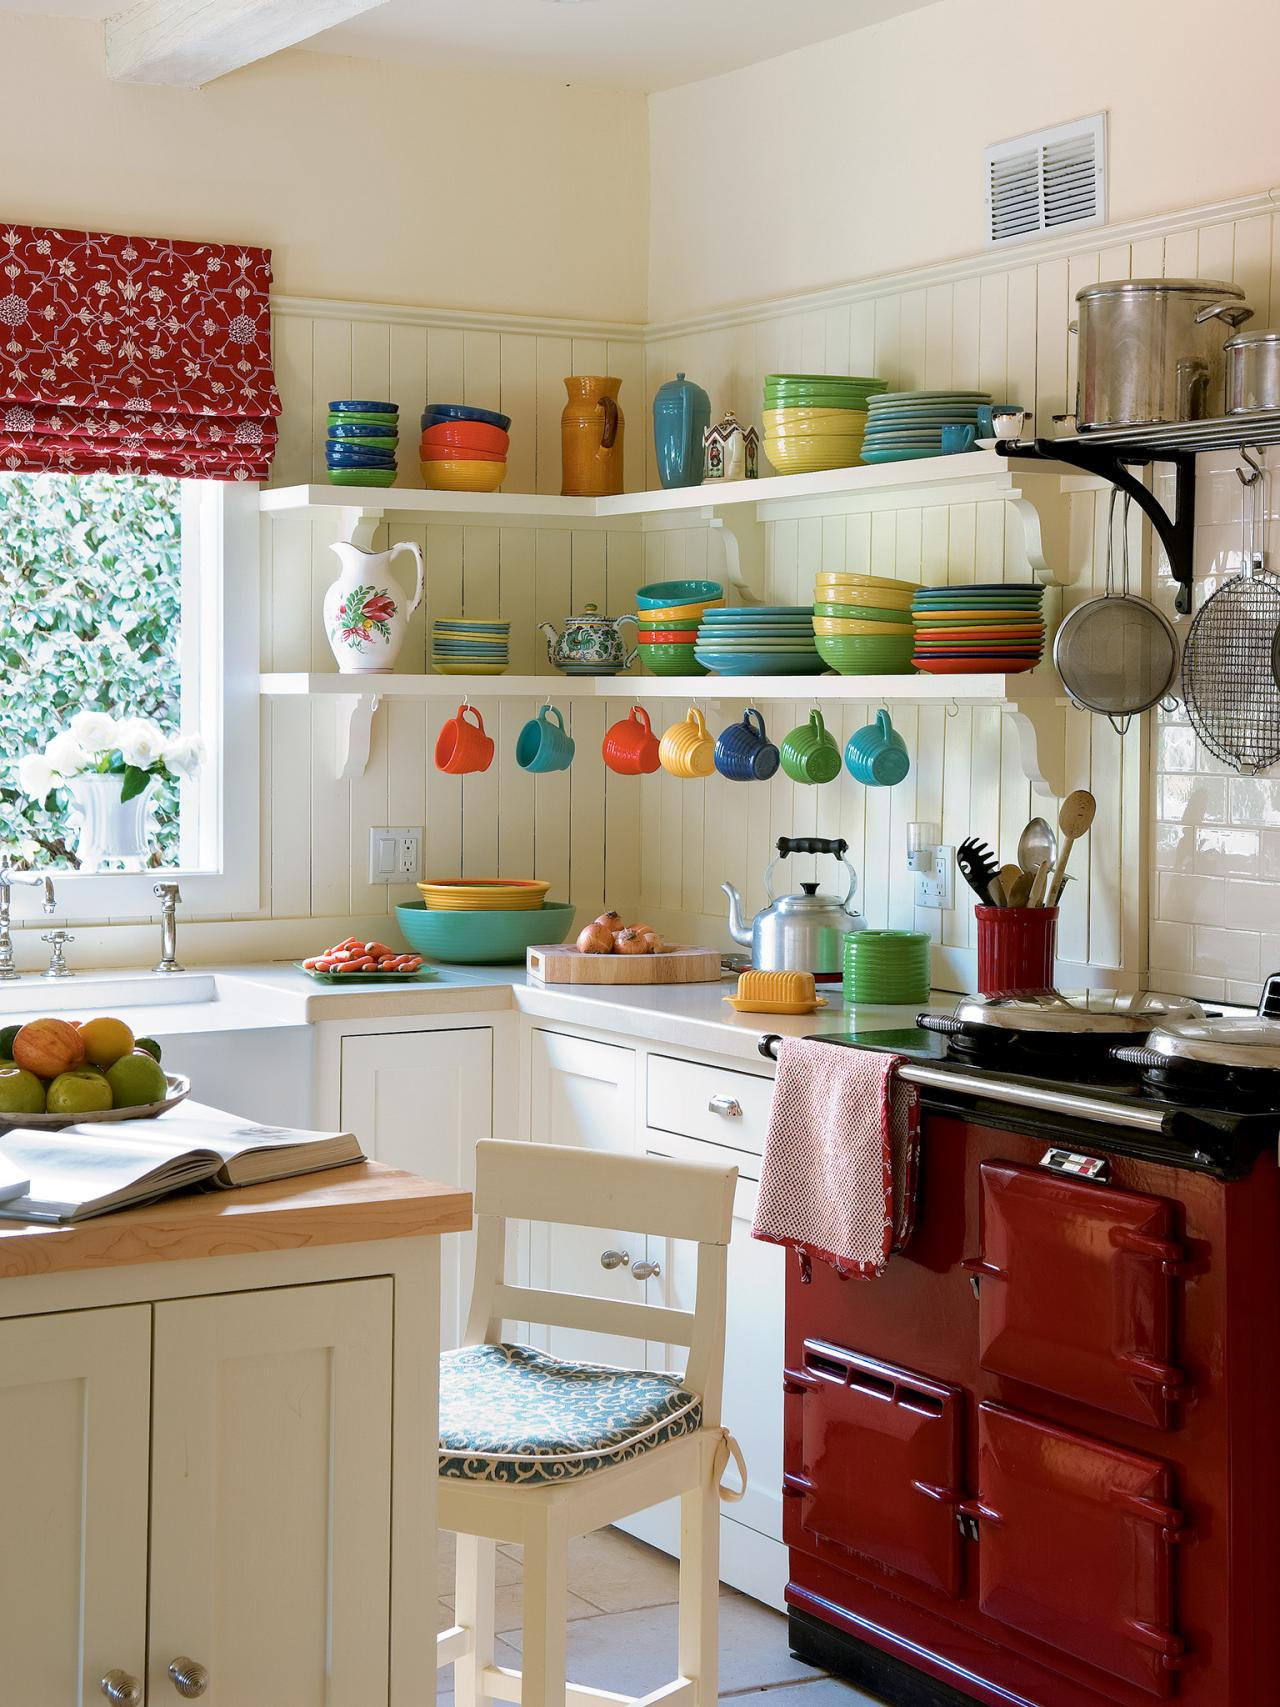 Small Galley Kitchen Storage Ideas small kitchen layouts: pictures, ideas & tips from hgtv | hgtv